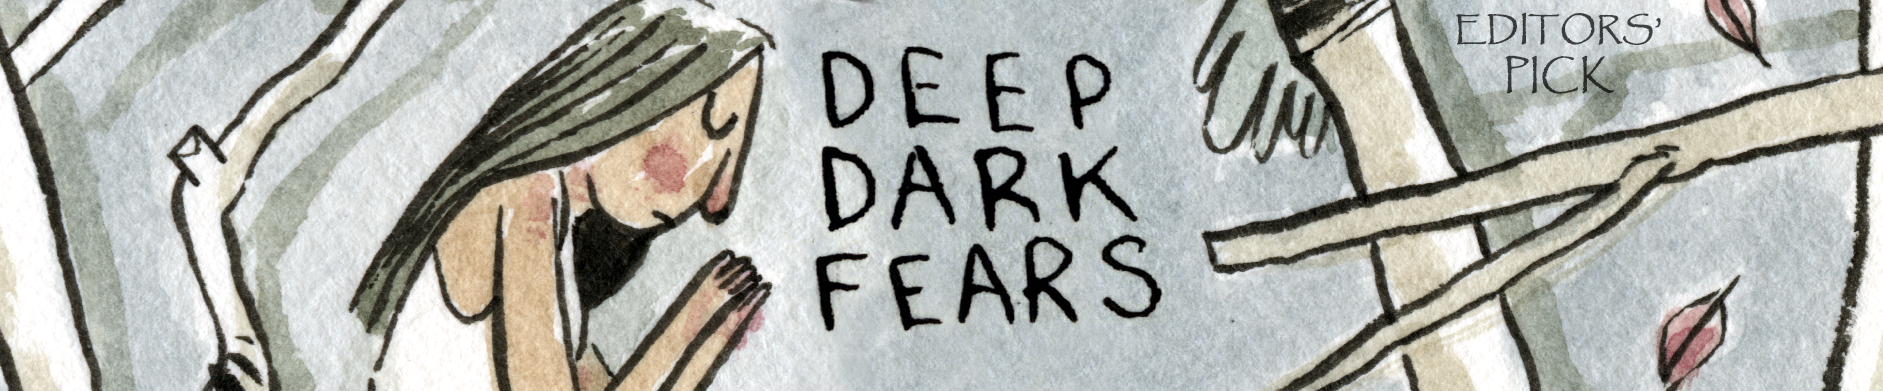 Fran Krause's - Deep Dark Fears